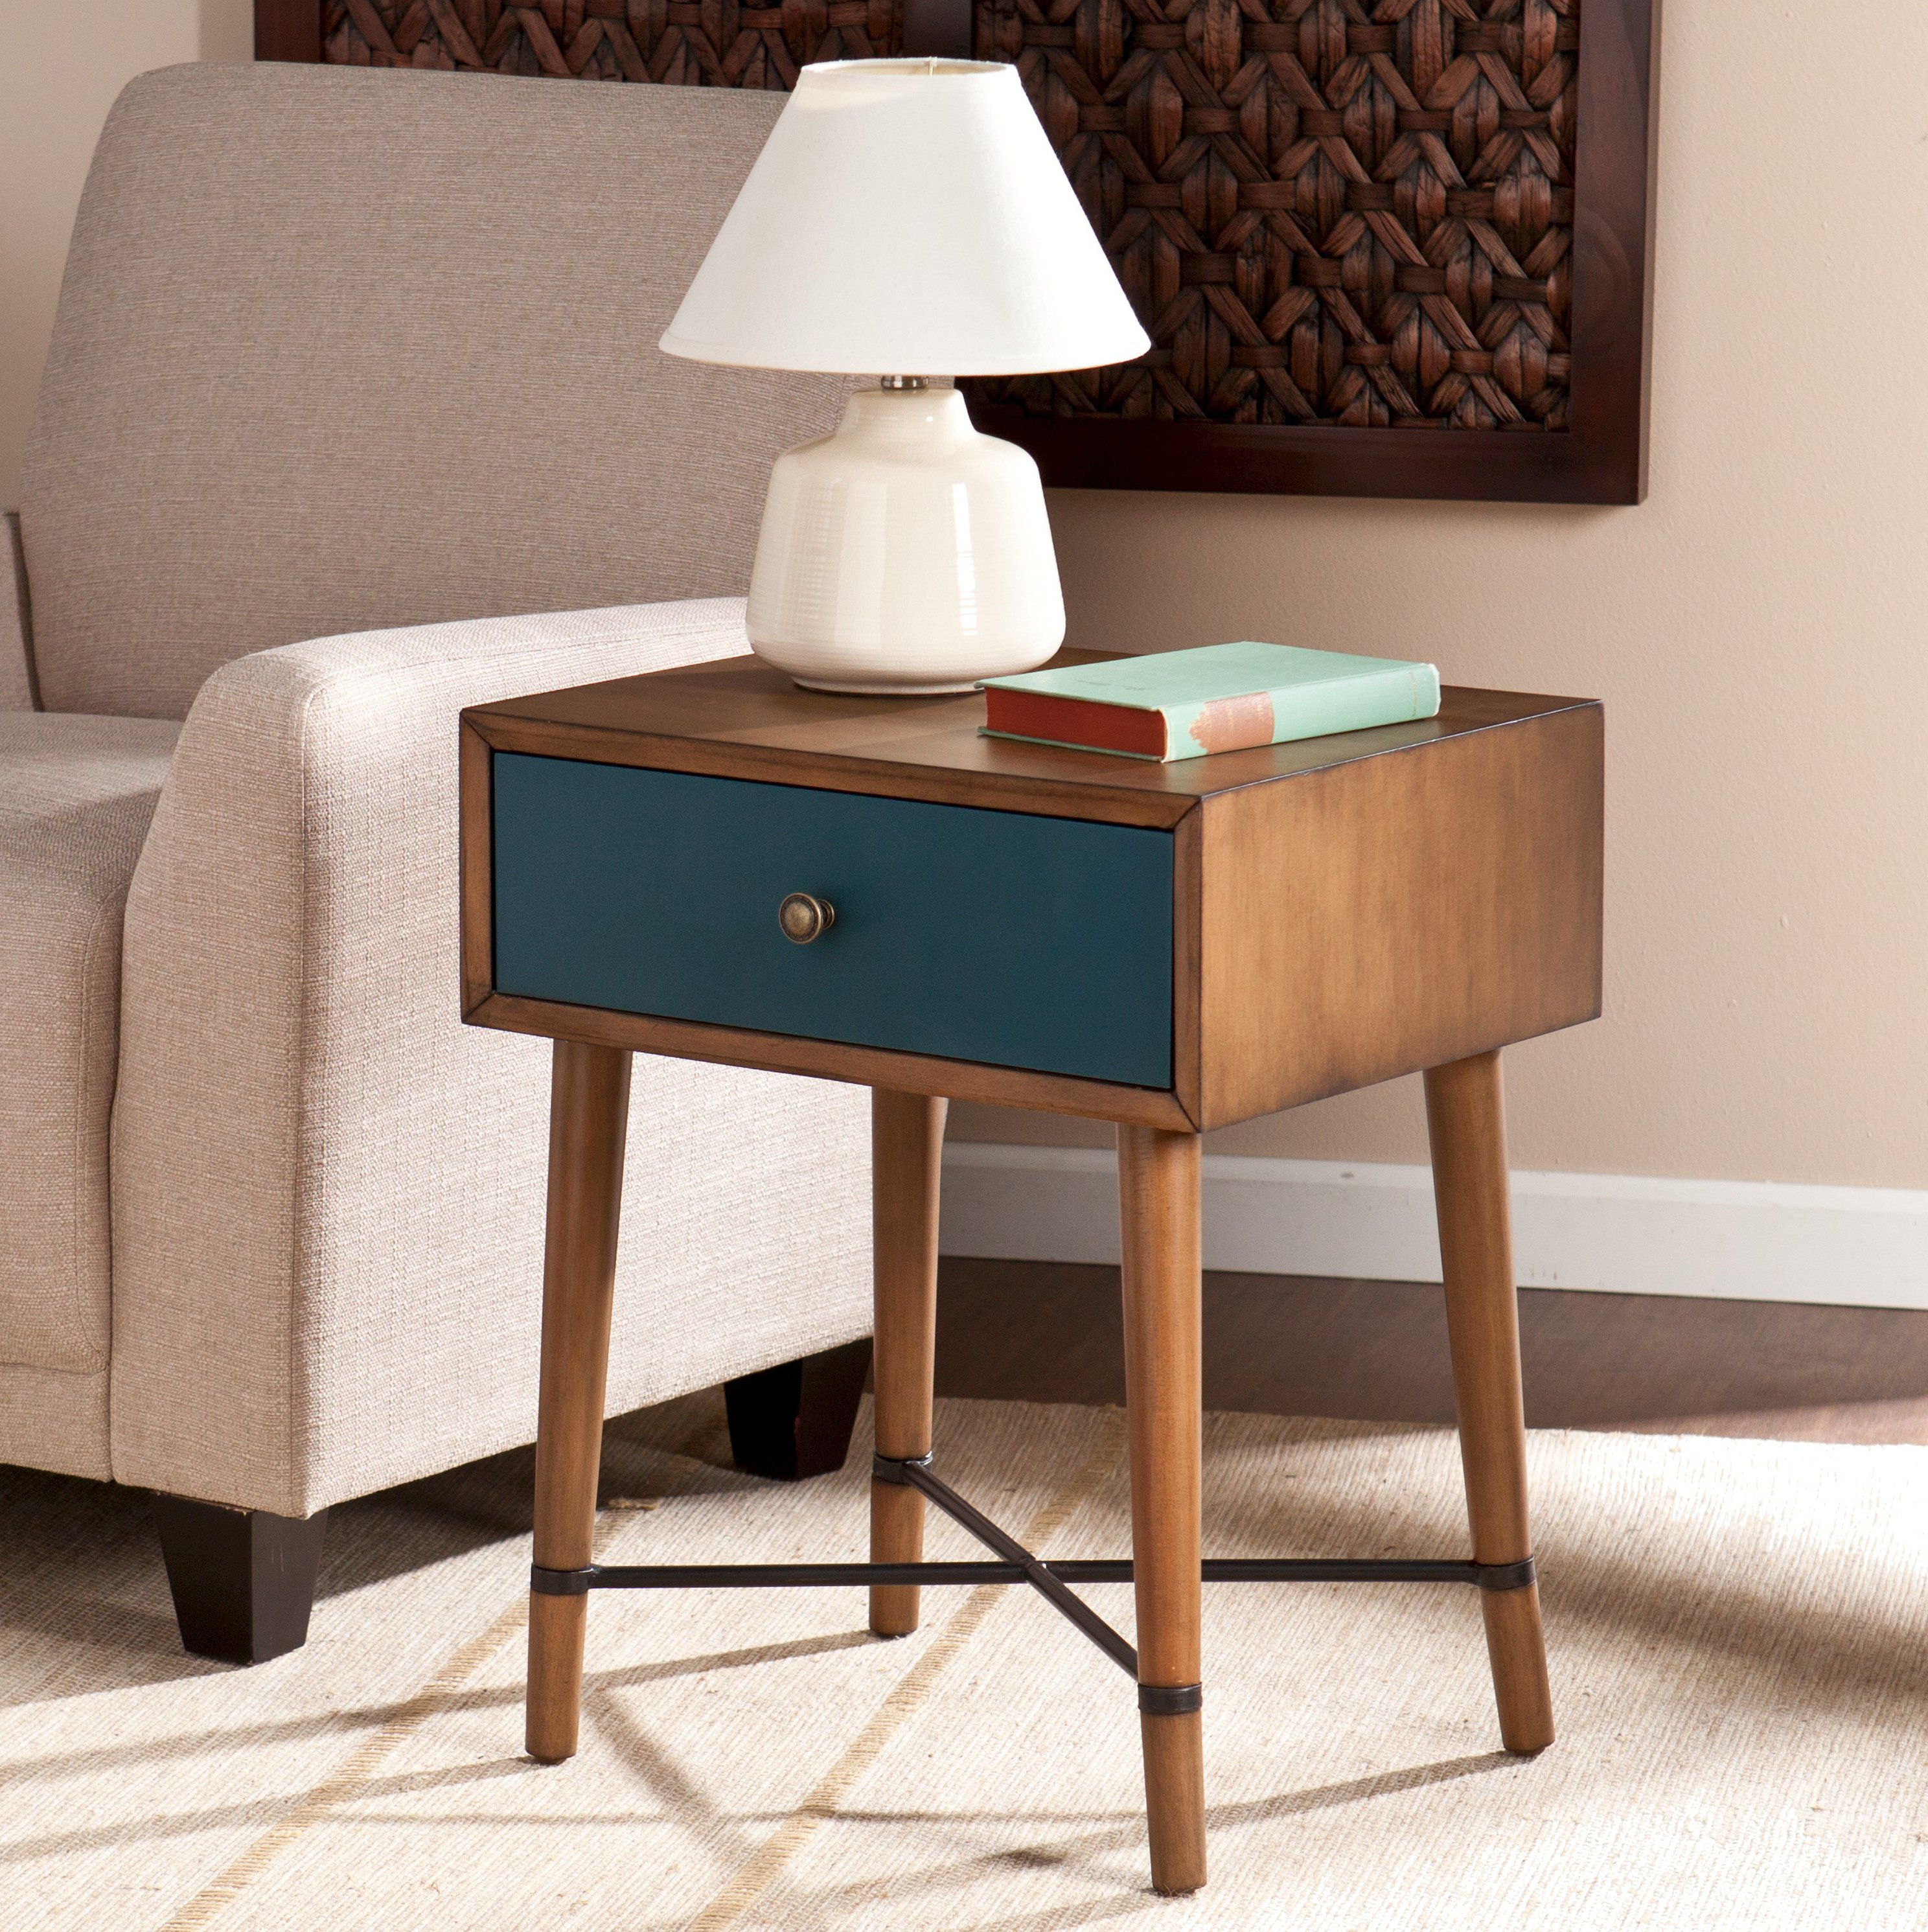 Mid Century Modern Style Furniture Decor From Box S